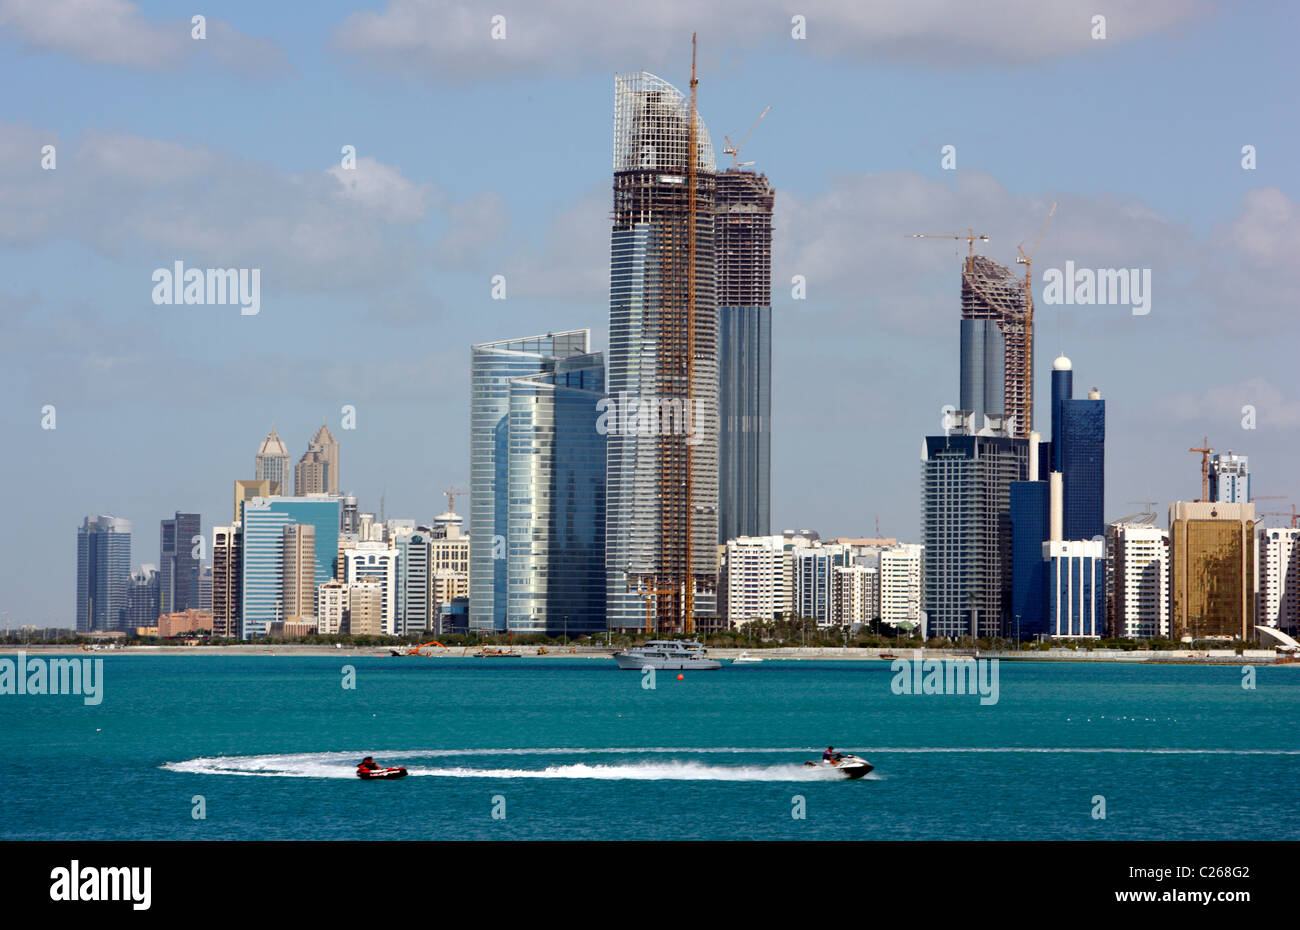 Skyline of Abu Dhabi, capital of United Arab Emirates. - Stock Image